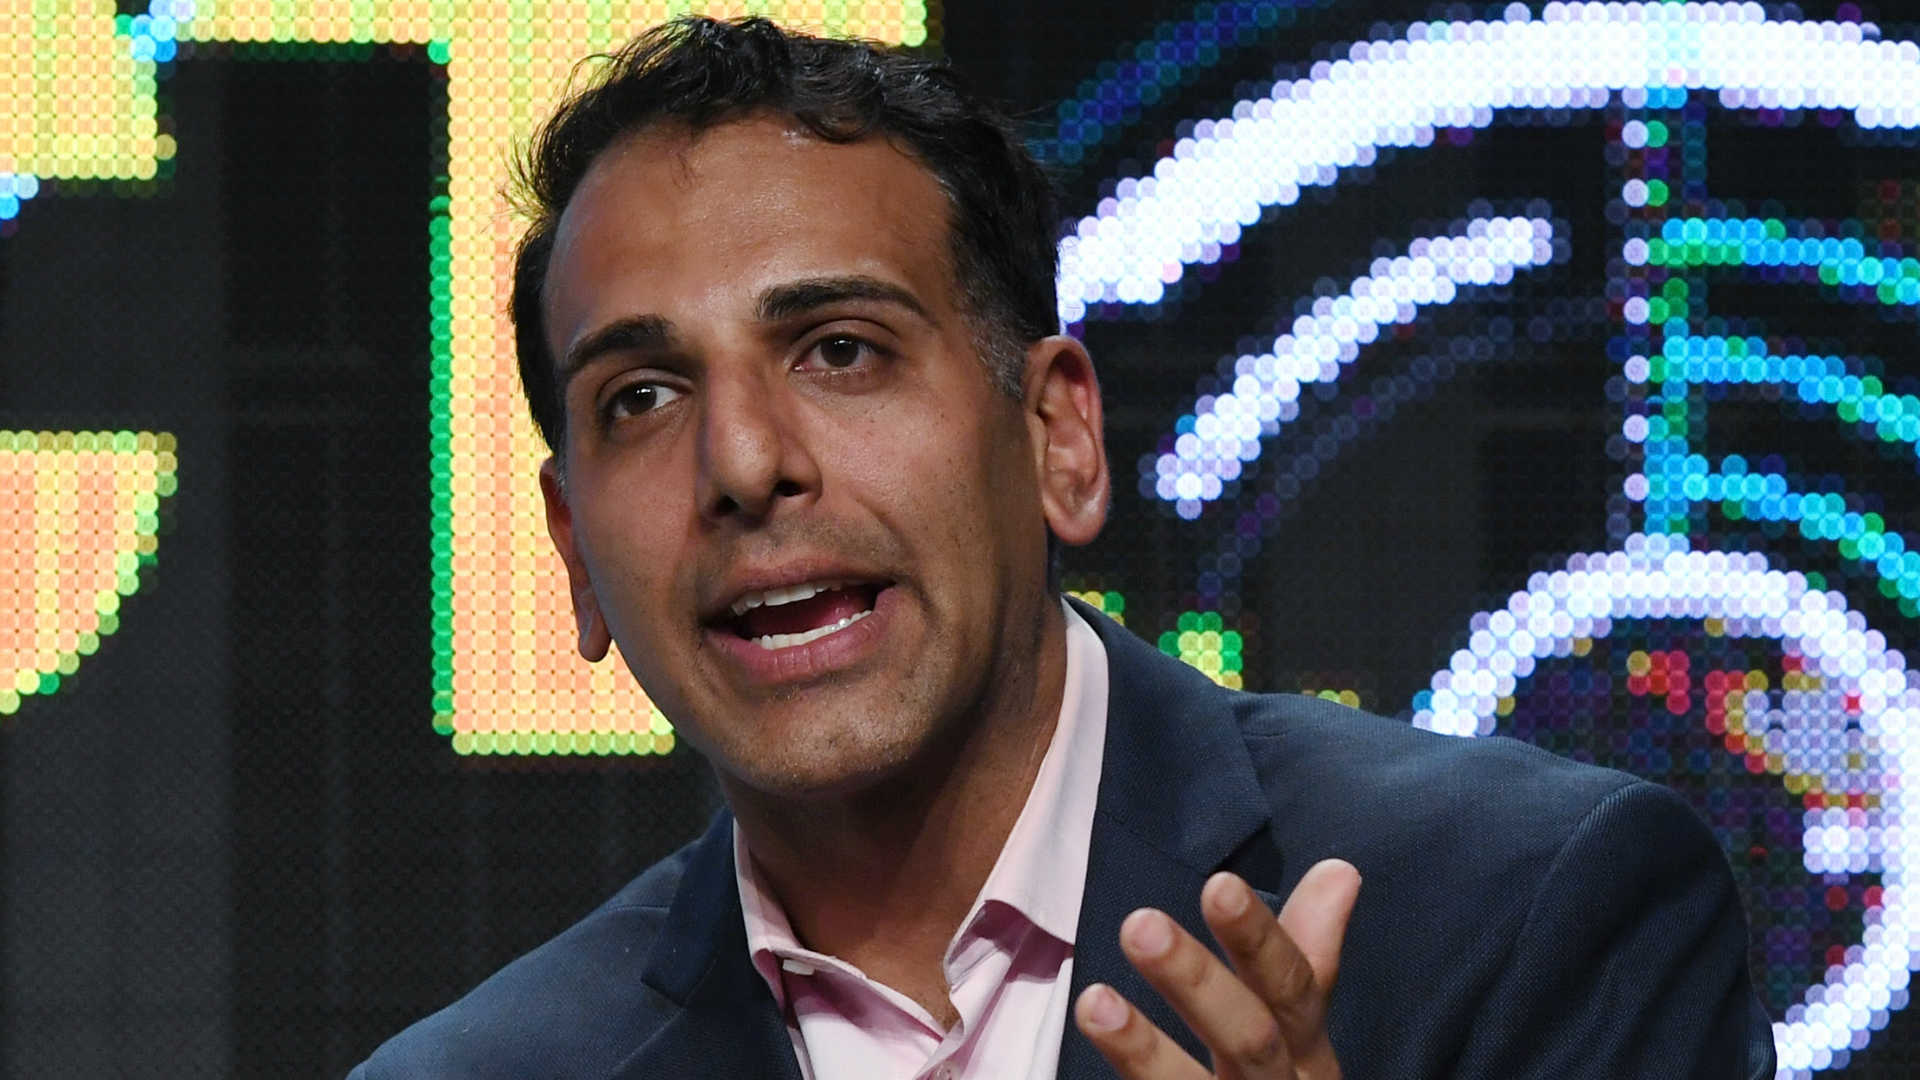 ESPN fired Adnan Virk after leaking confidential info about 'Baseball Tonight'